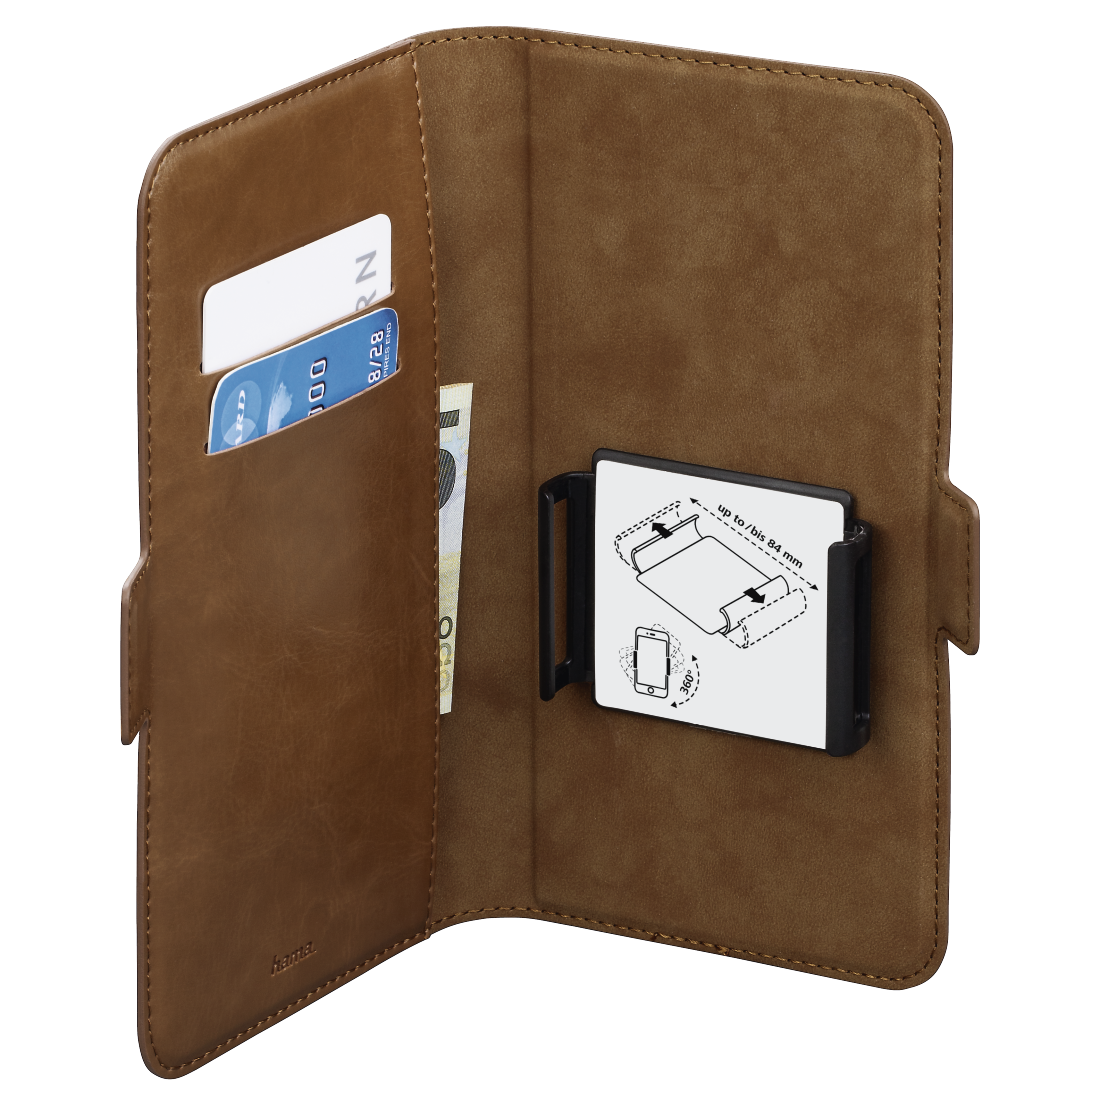 abx3 High-Res Image 3 - Hama, Smart Move Booklet Case, size XXL (5.2 - 5.8), brown